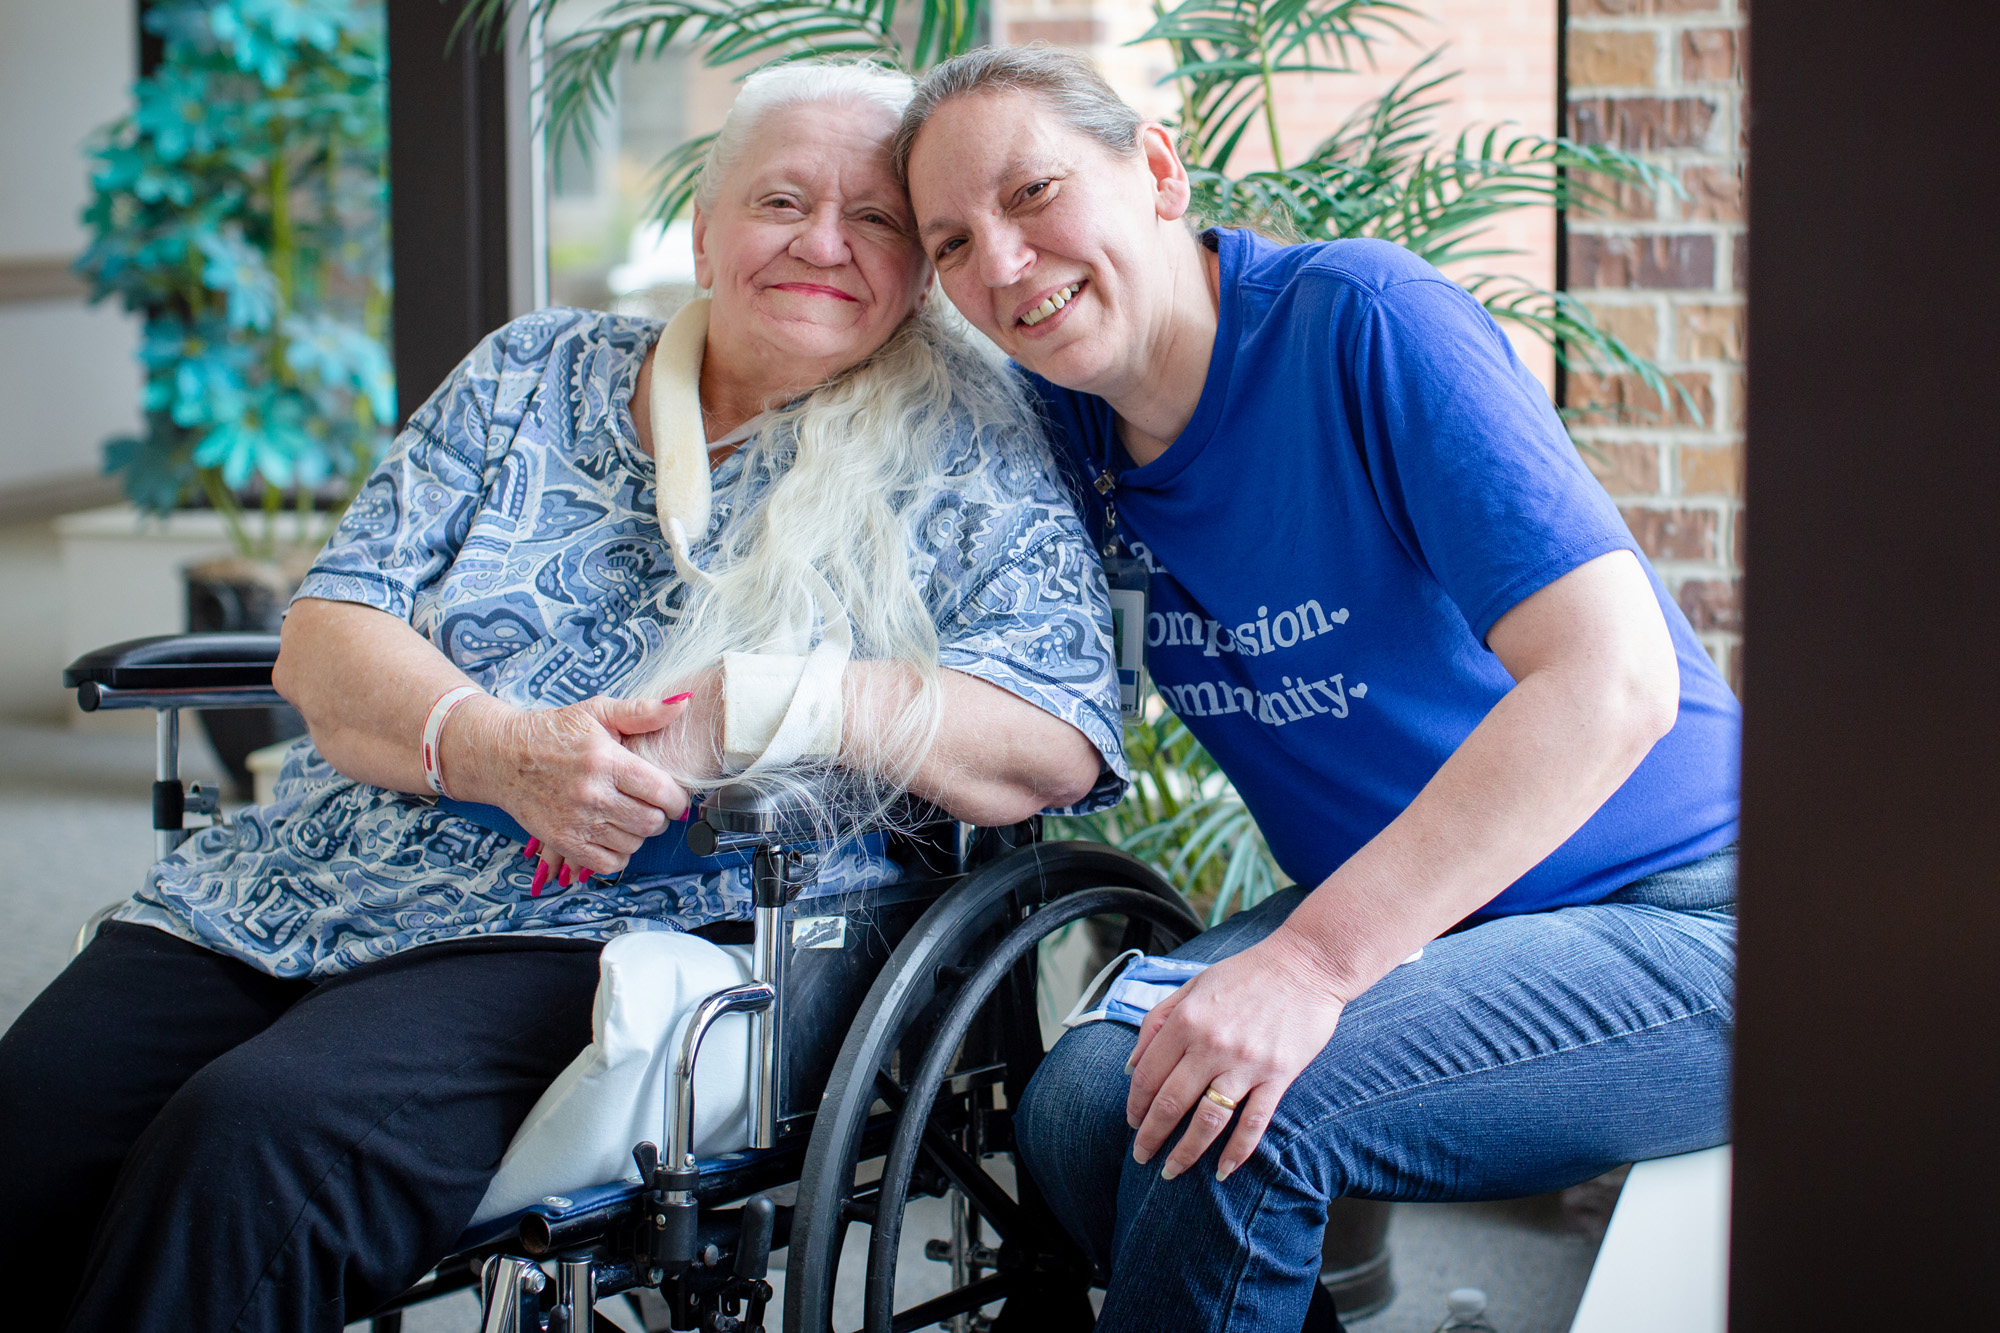 Doris Crippen with her long-lost sister, Bev Boro, after they were unexpectedly reunited at a rehabilitation center